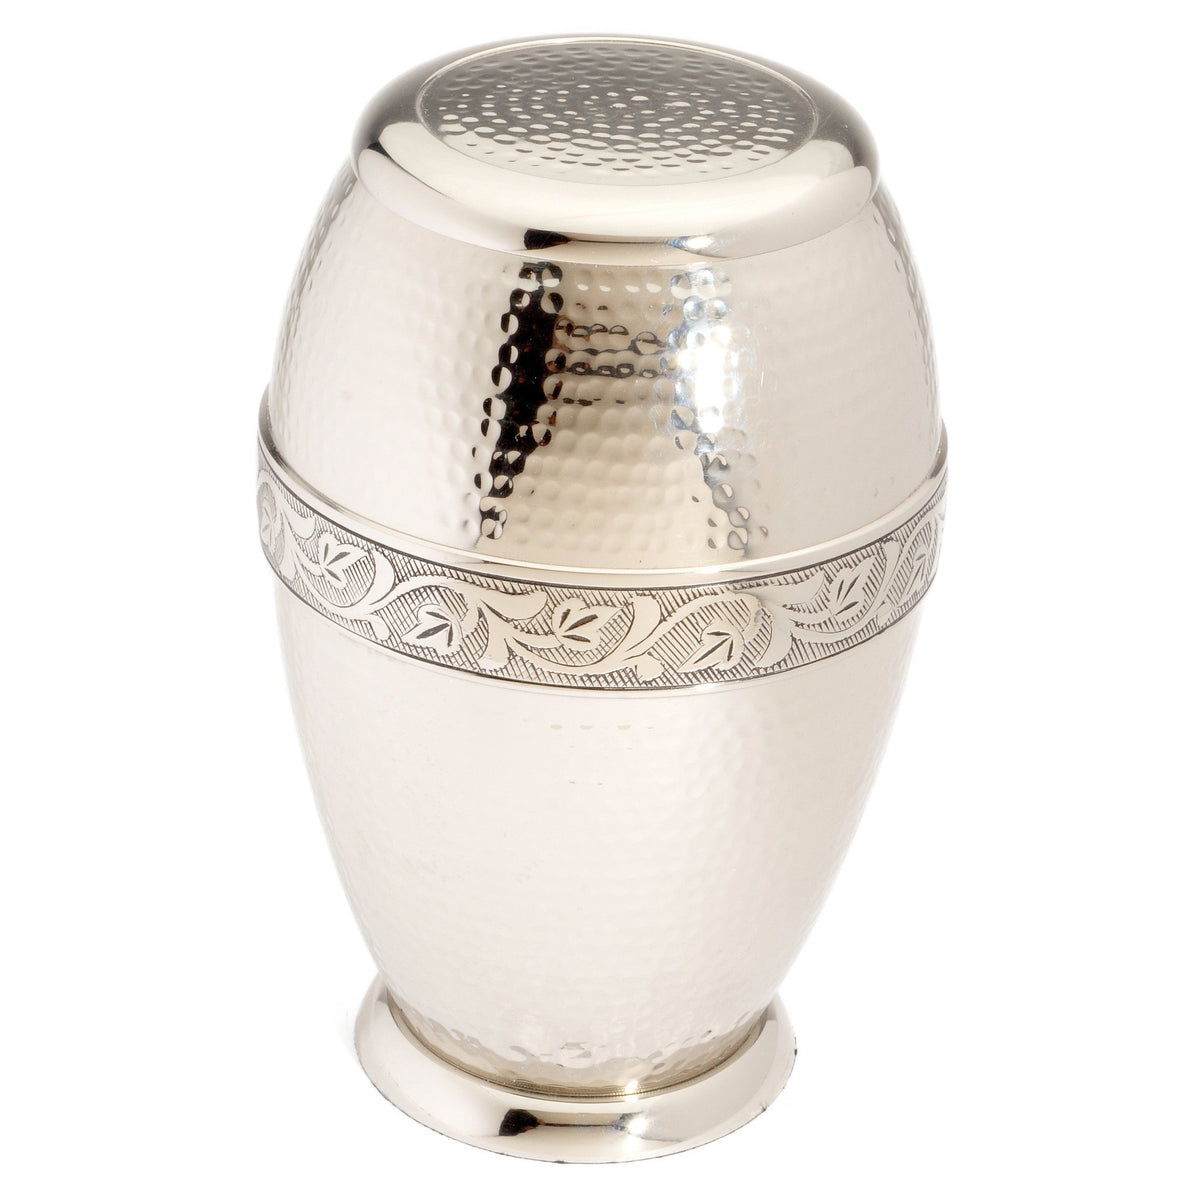 Ascot Nickel Cremation Ashes Urn Adult